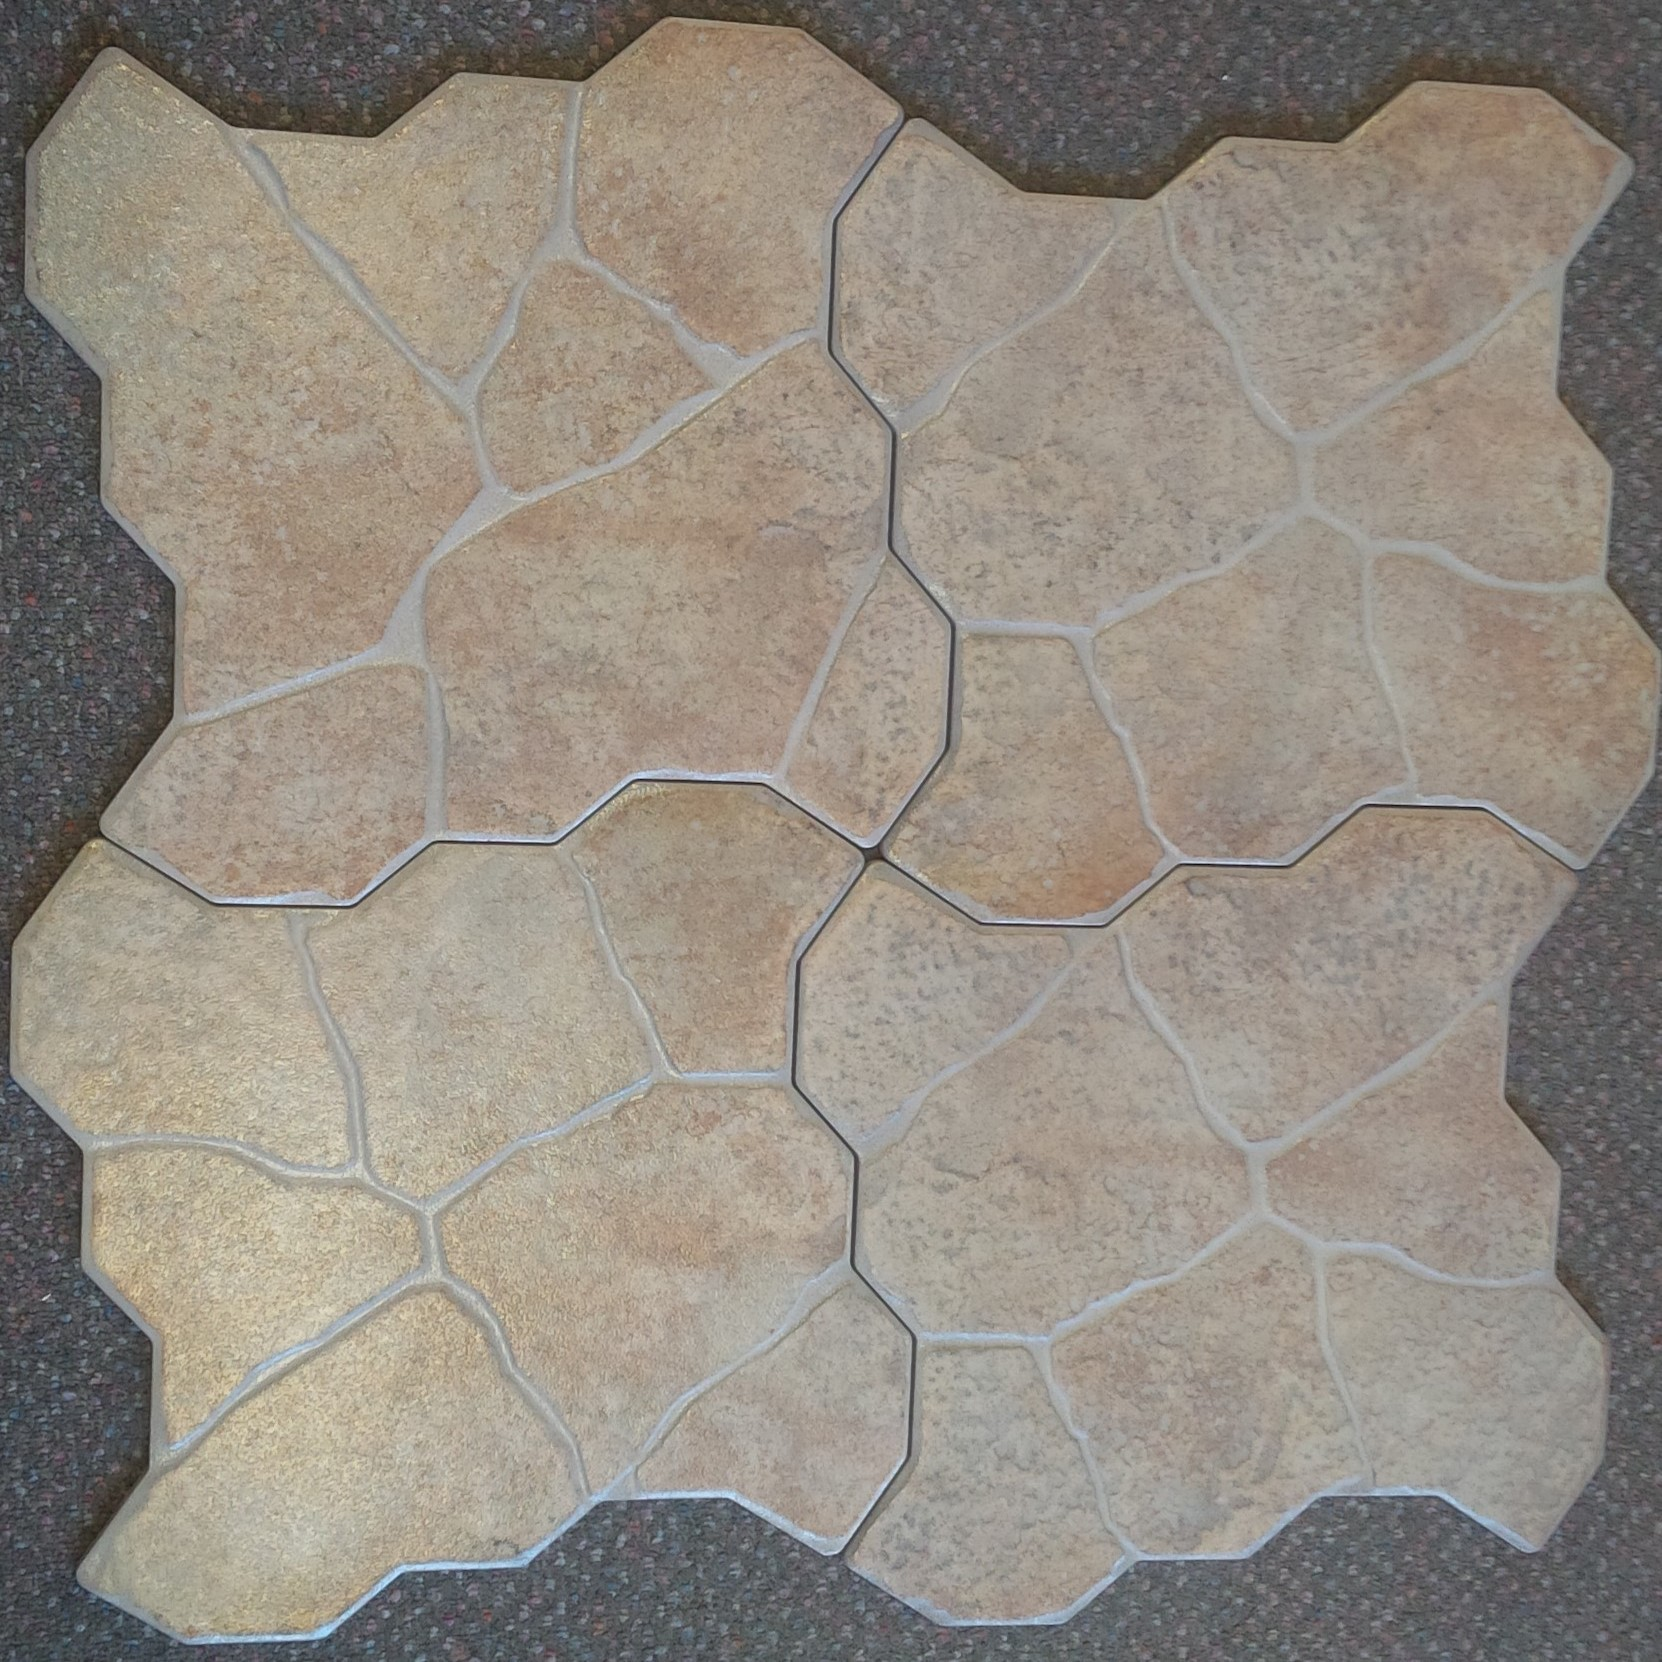 In or outdoor, this interlocking tile will look interesting on any entrance or front step!